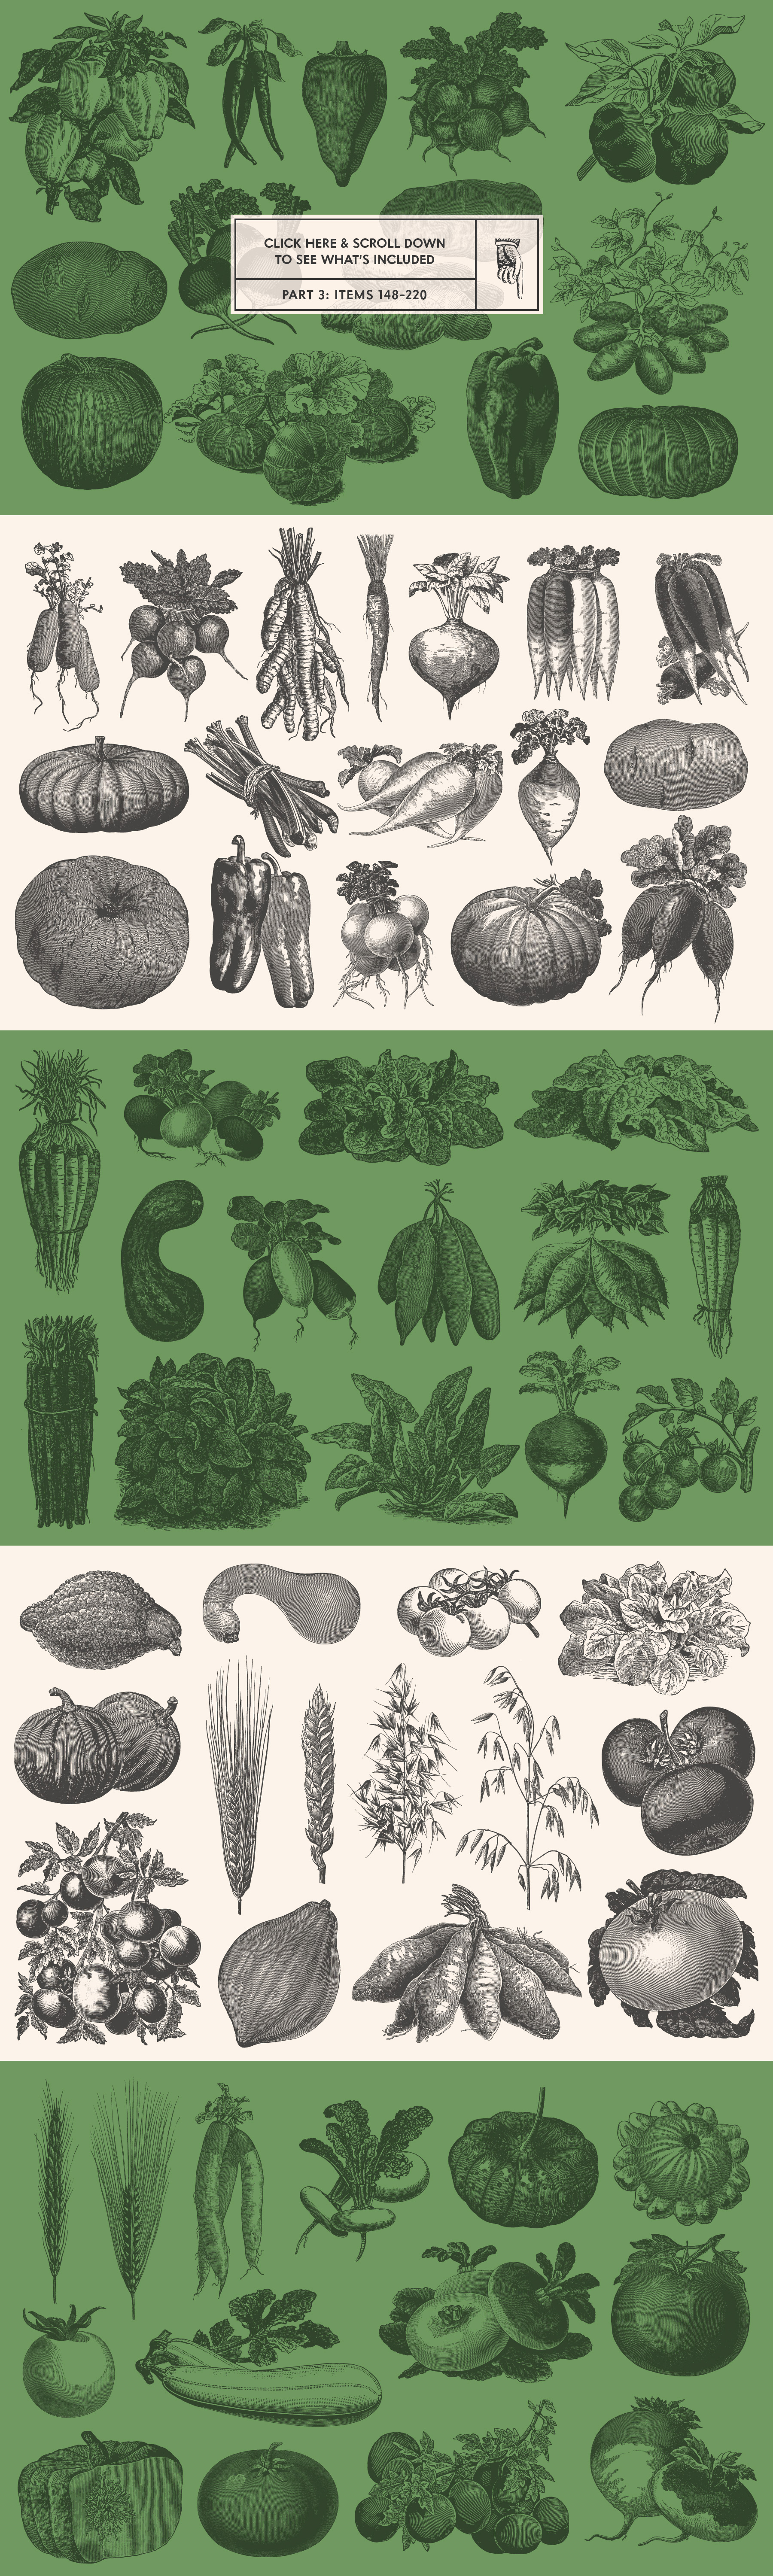 220 Vintage Vegetable Illustrations by Graphic Goods – all items preview 03